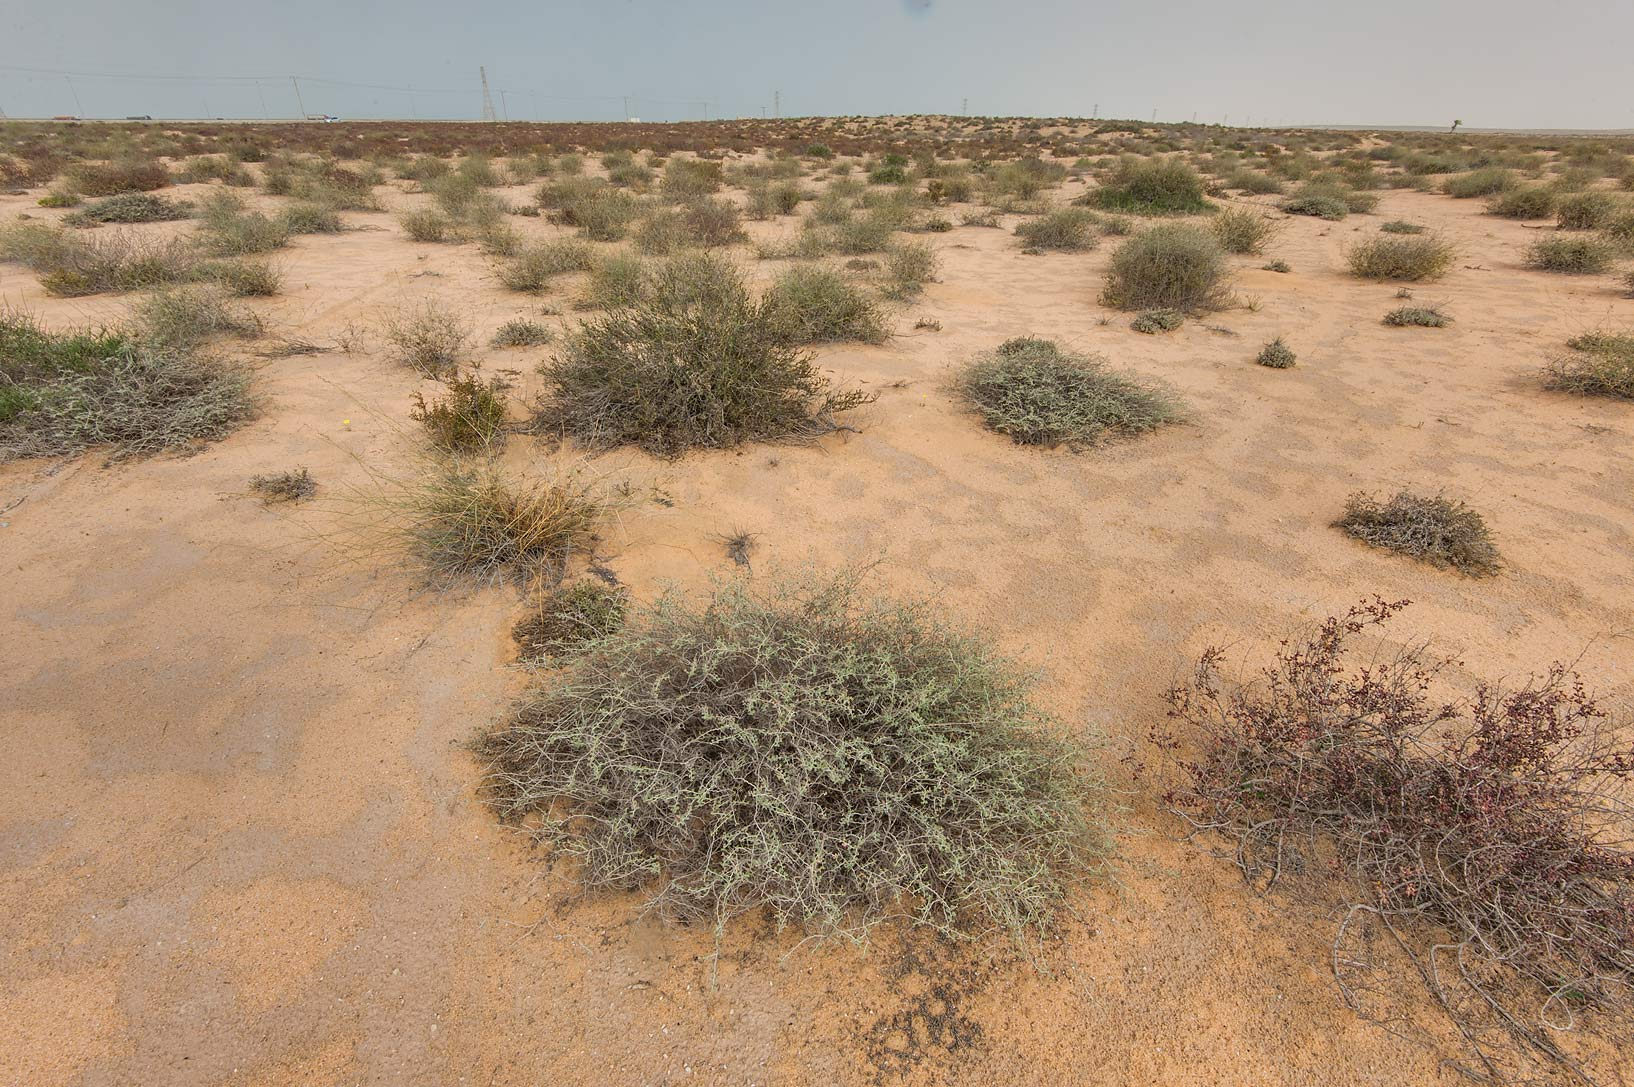 Vegetation on sand dunes near the spring in...Reserve near Abu Samra. Southern Qatar